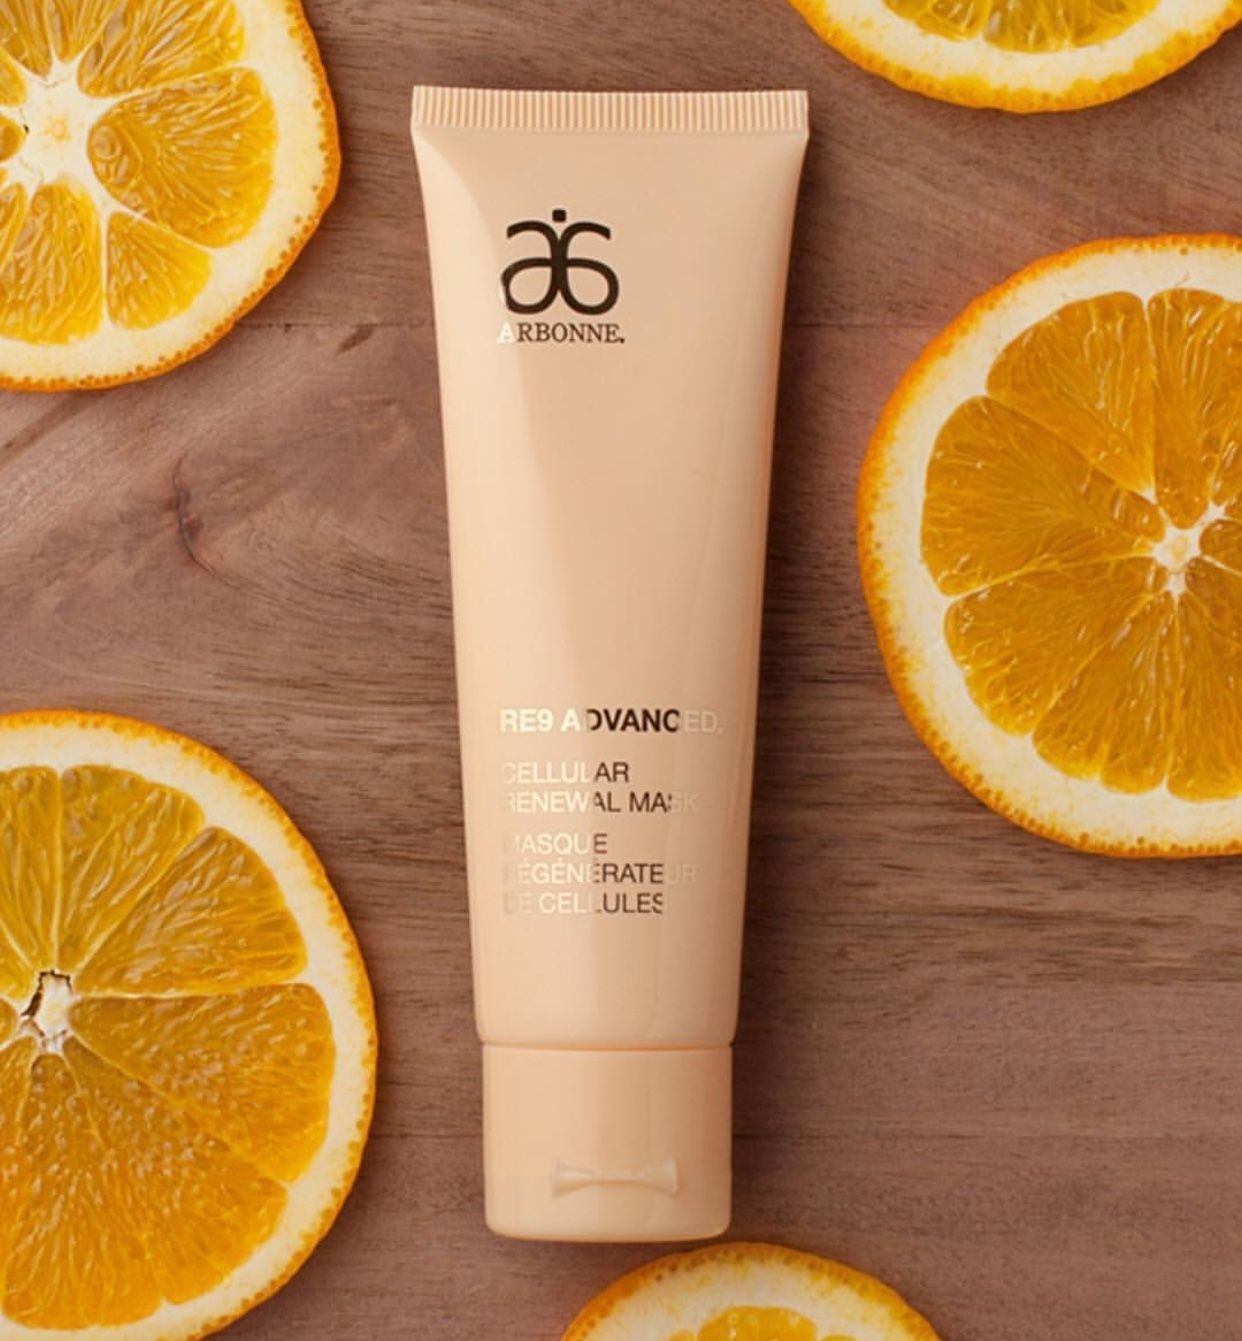 Re9 Cellular Renewal Mask For The Optimal Skin Health And Appearance Skin Regenerates Once